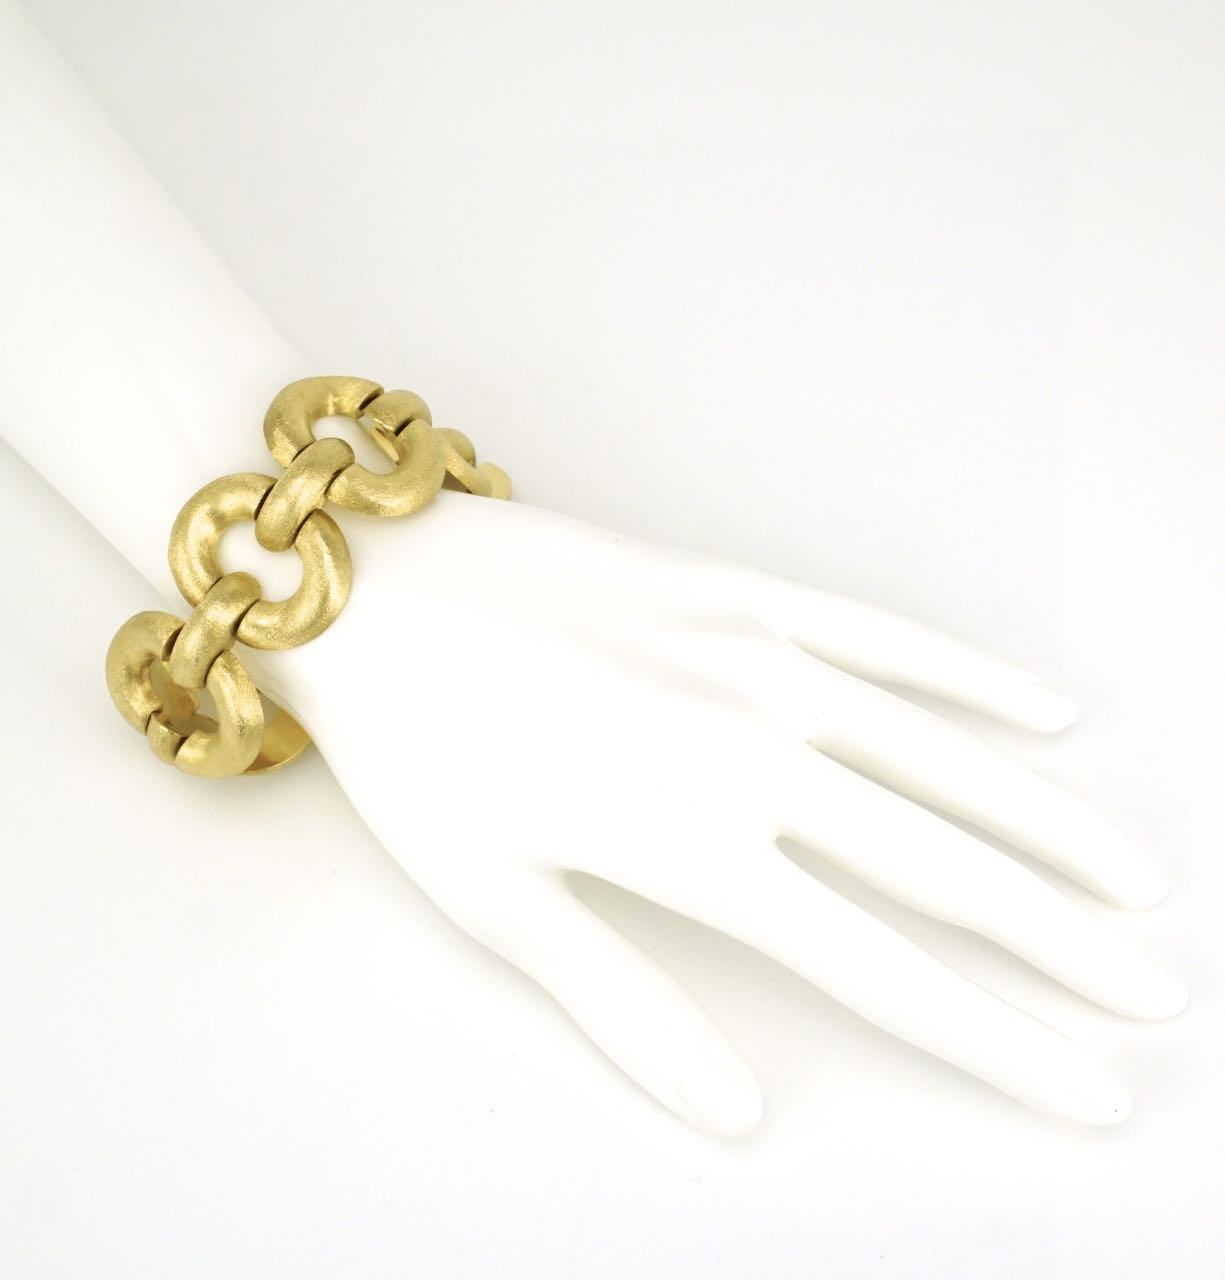 Italian 18k yellow gold bracelet 1960s